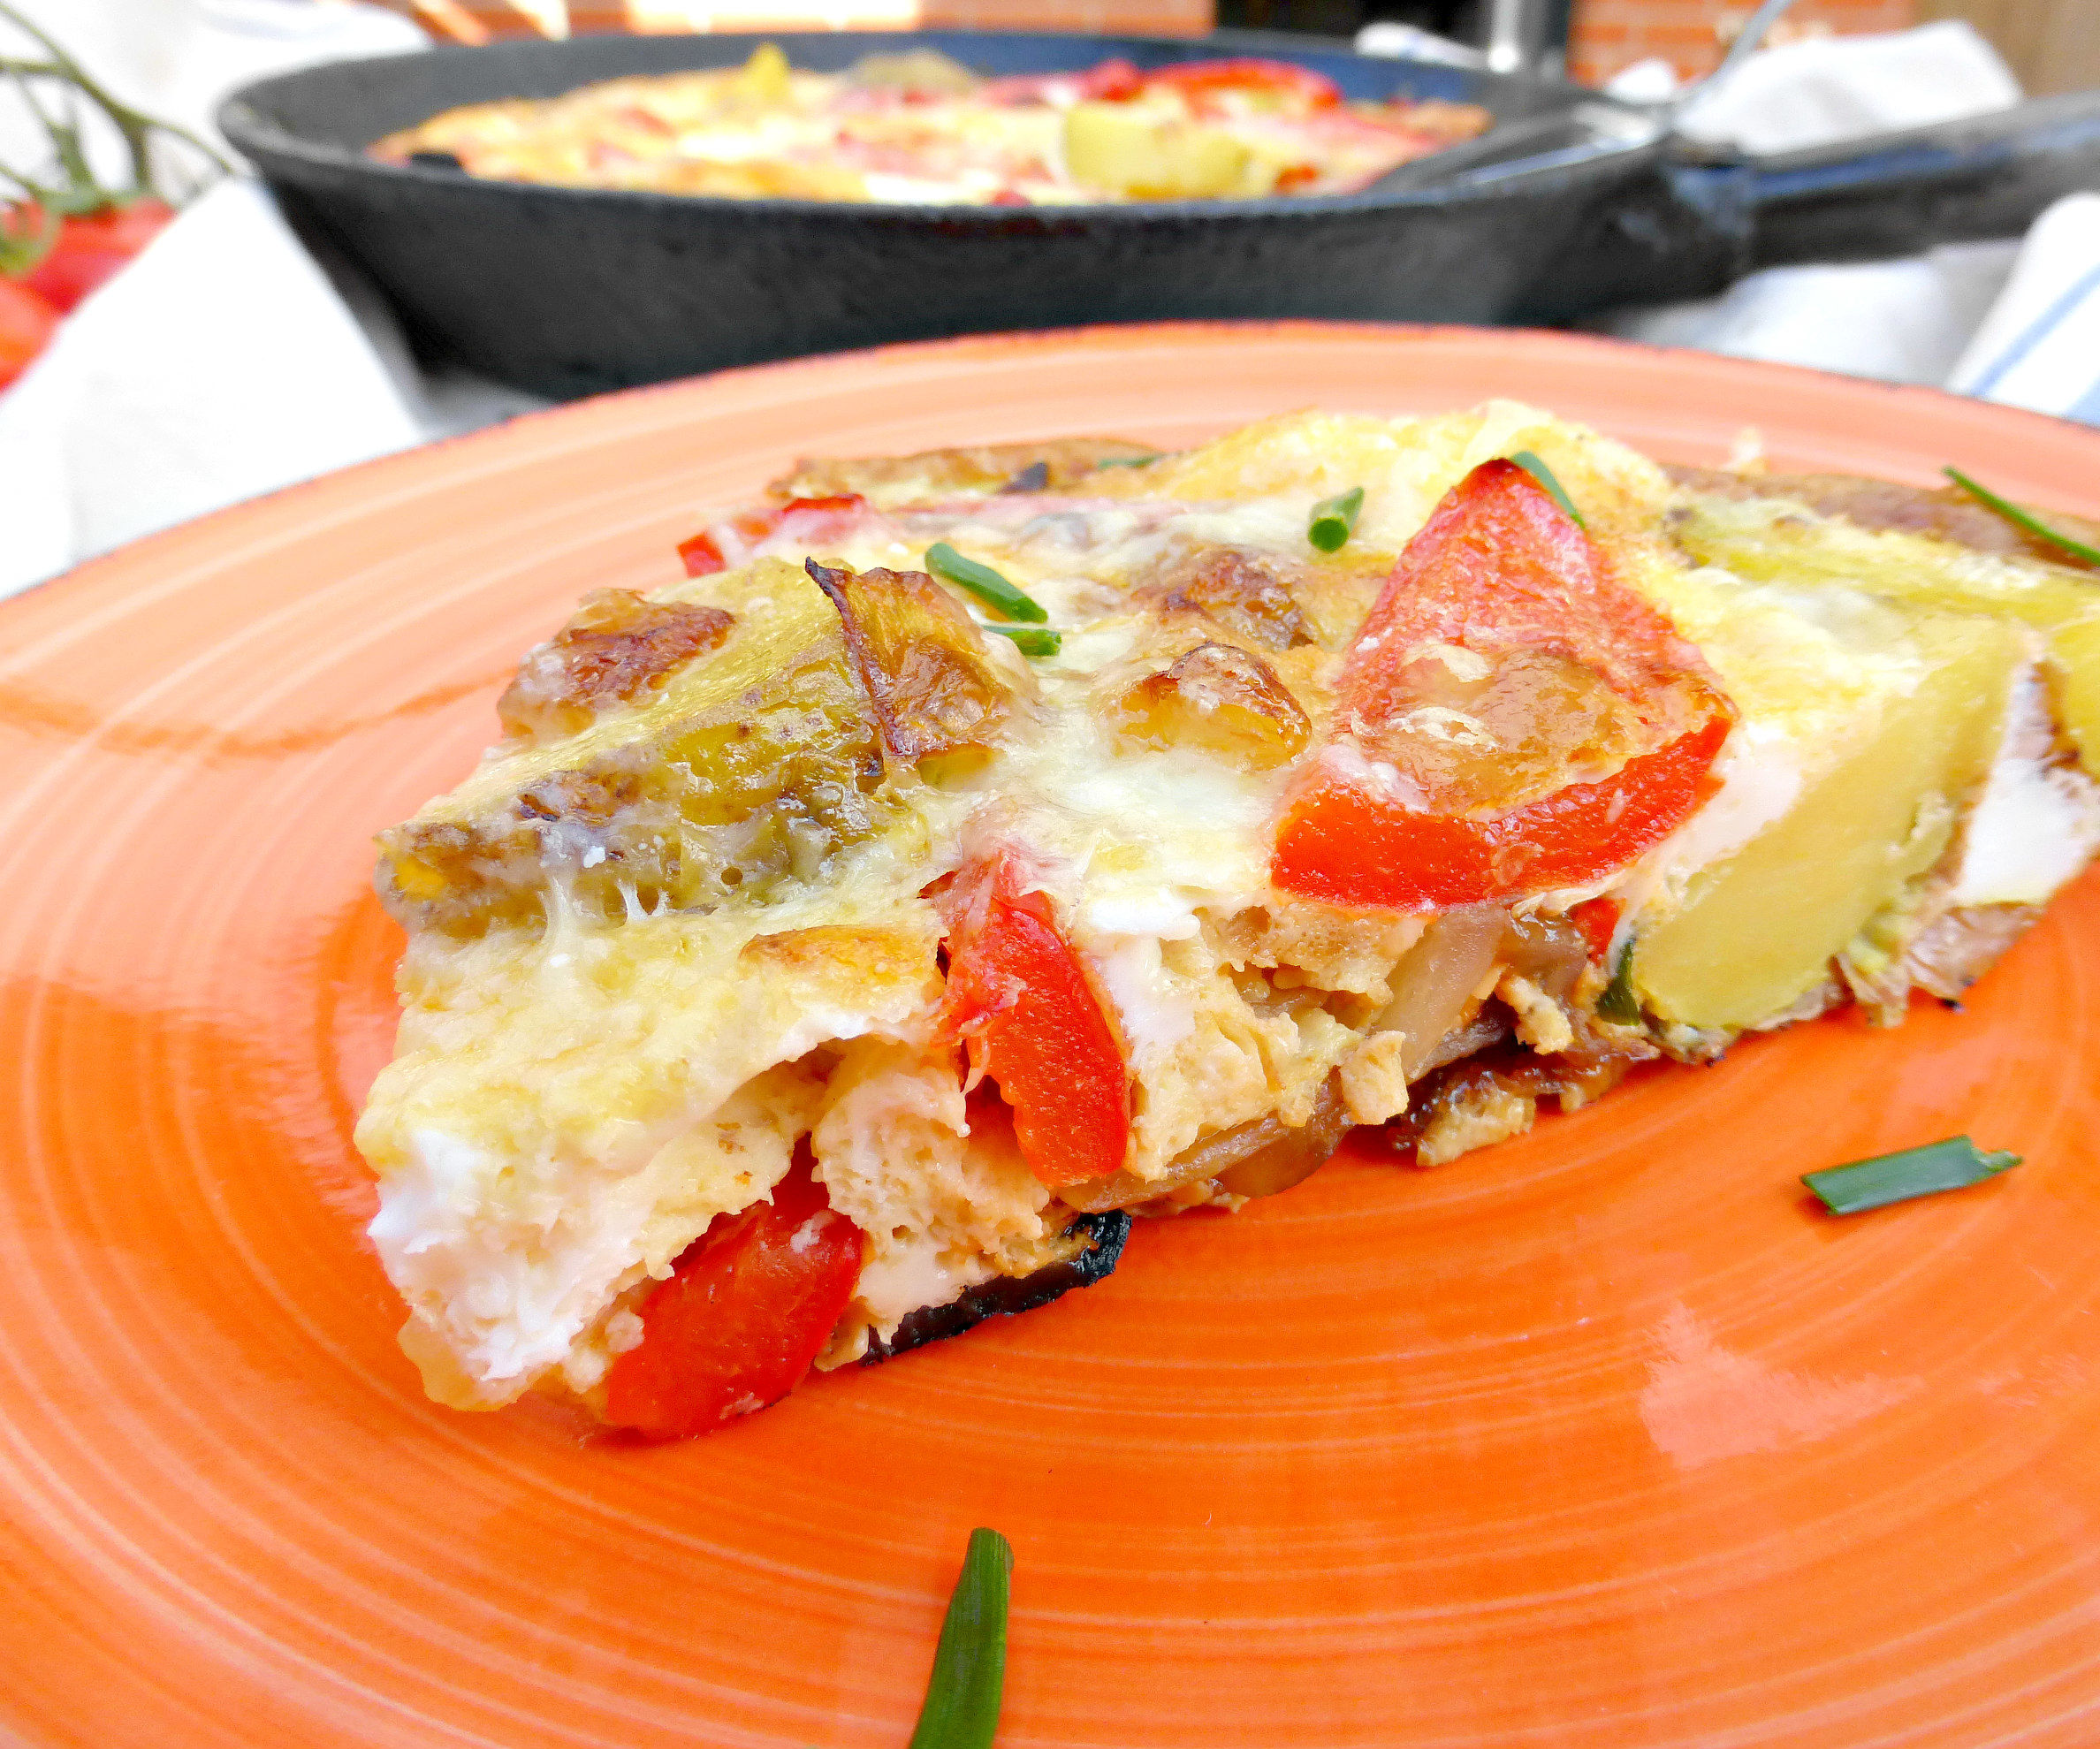 Spanish Style Omelette (with Red Peppers, Onion and Potatoes)